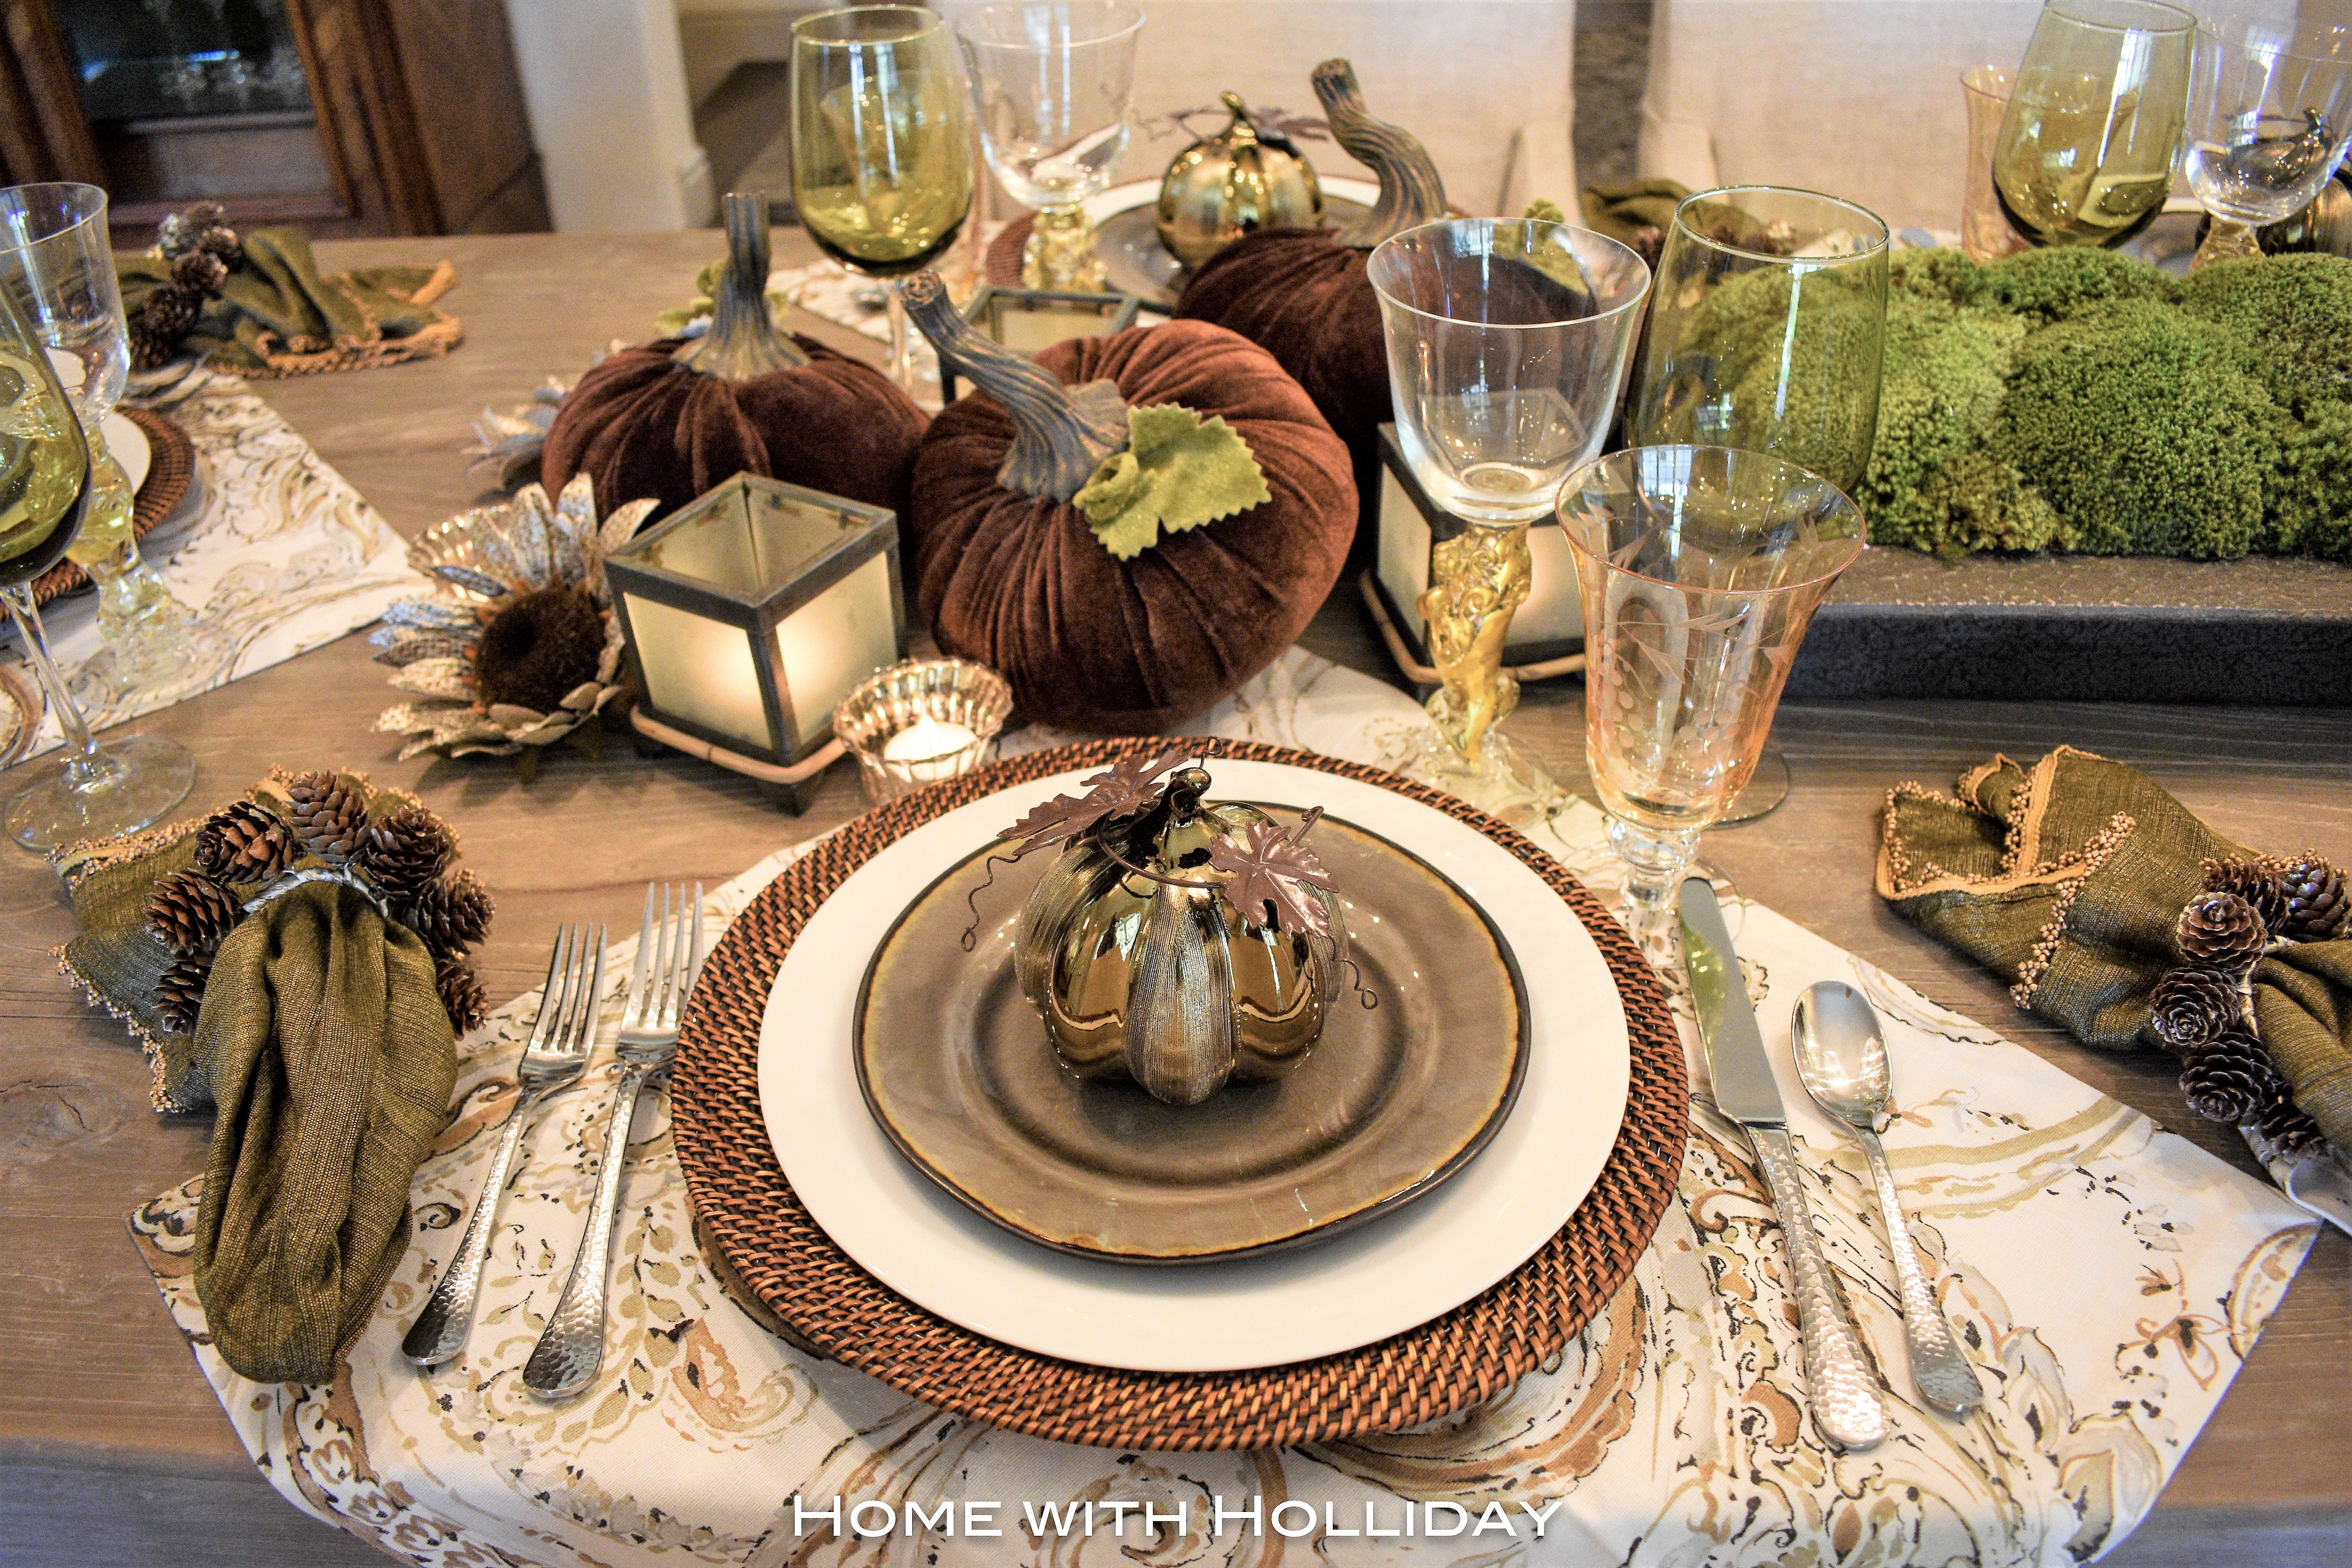 Thanksgiving Table Setting with Pumpkins